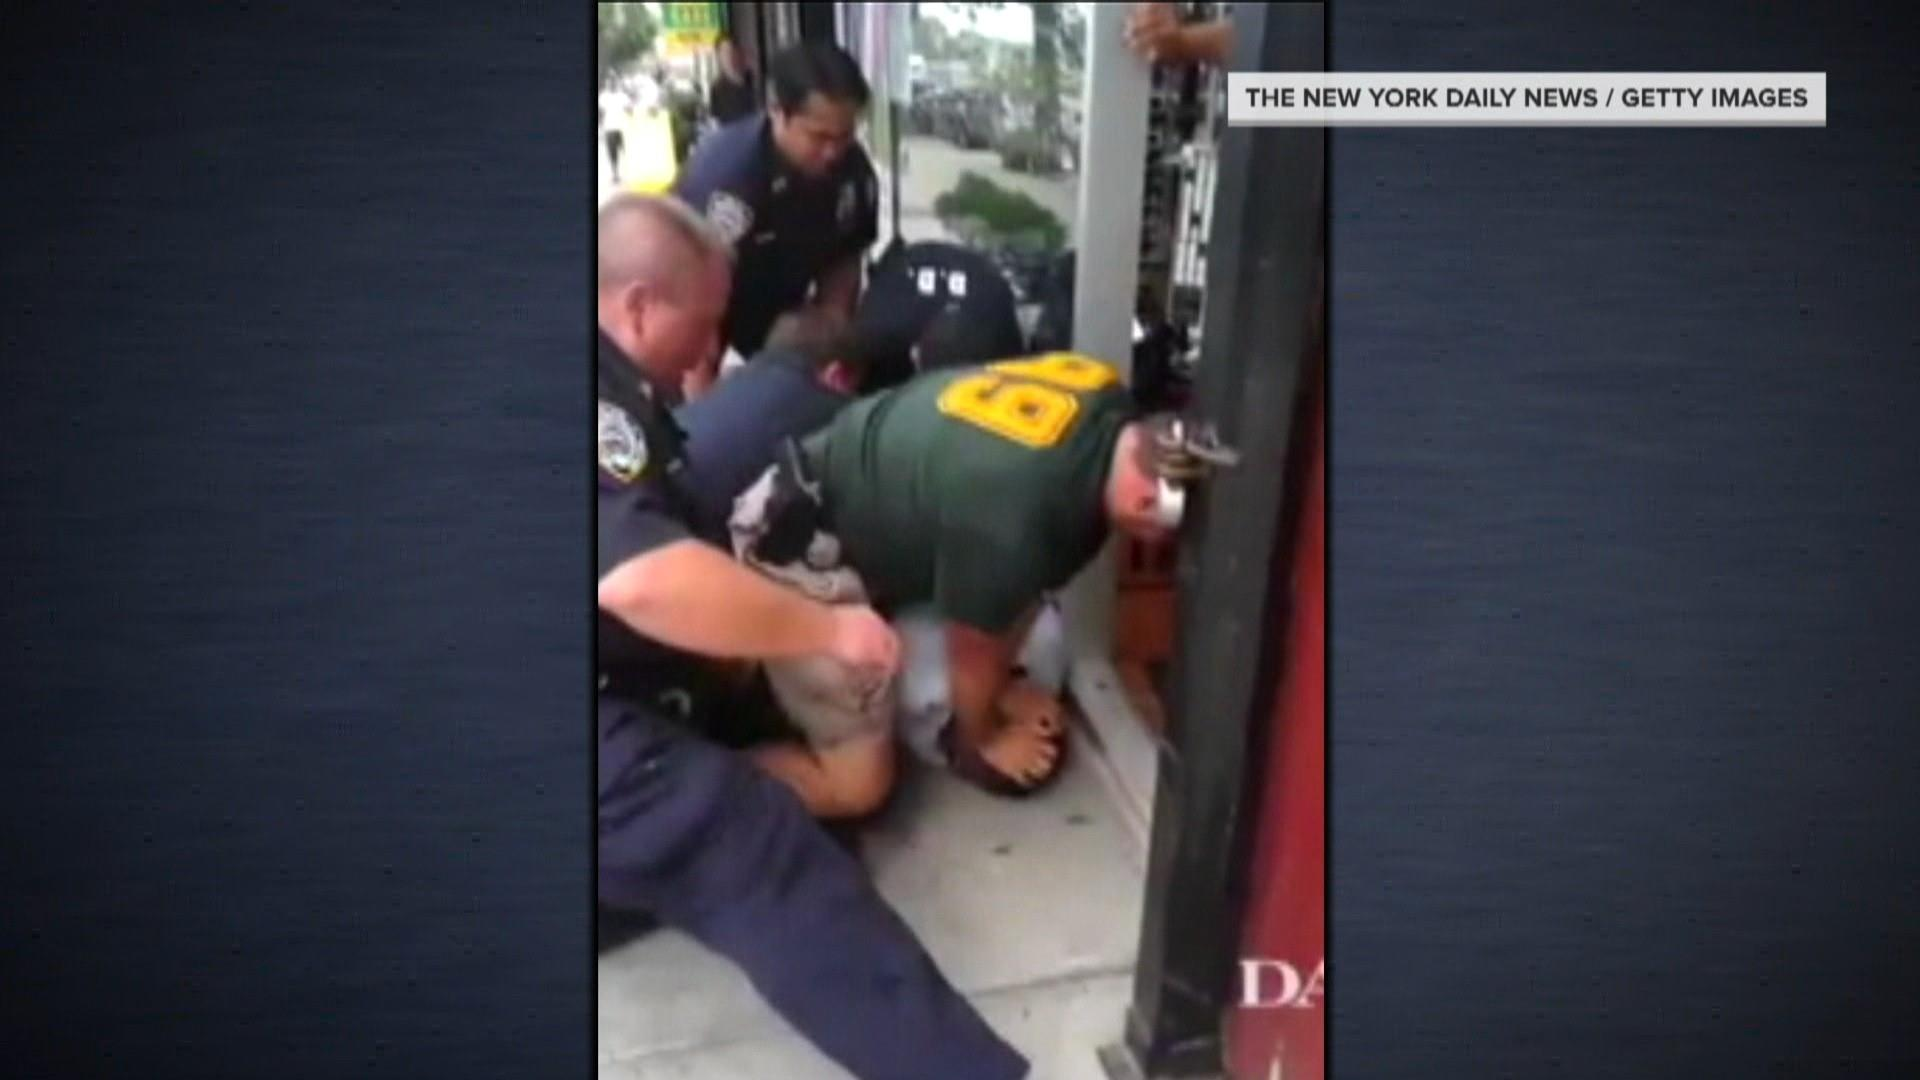 Decision not to charge NYPD officer in Eric Garner case exposes DOJ divide